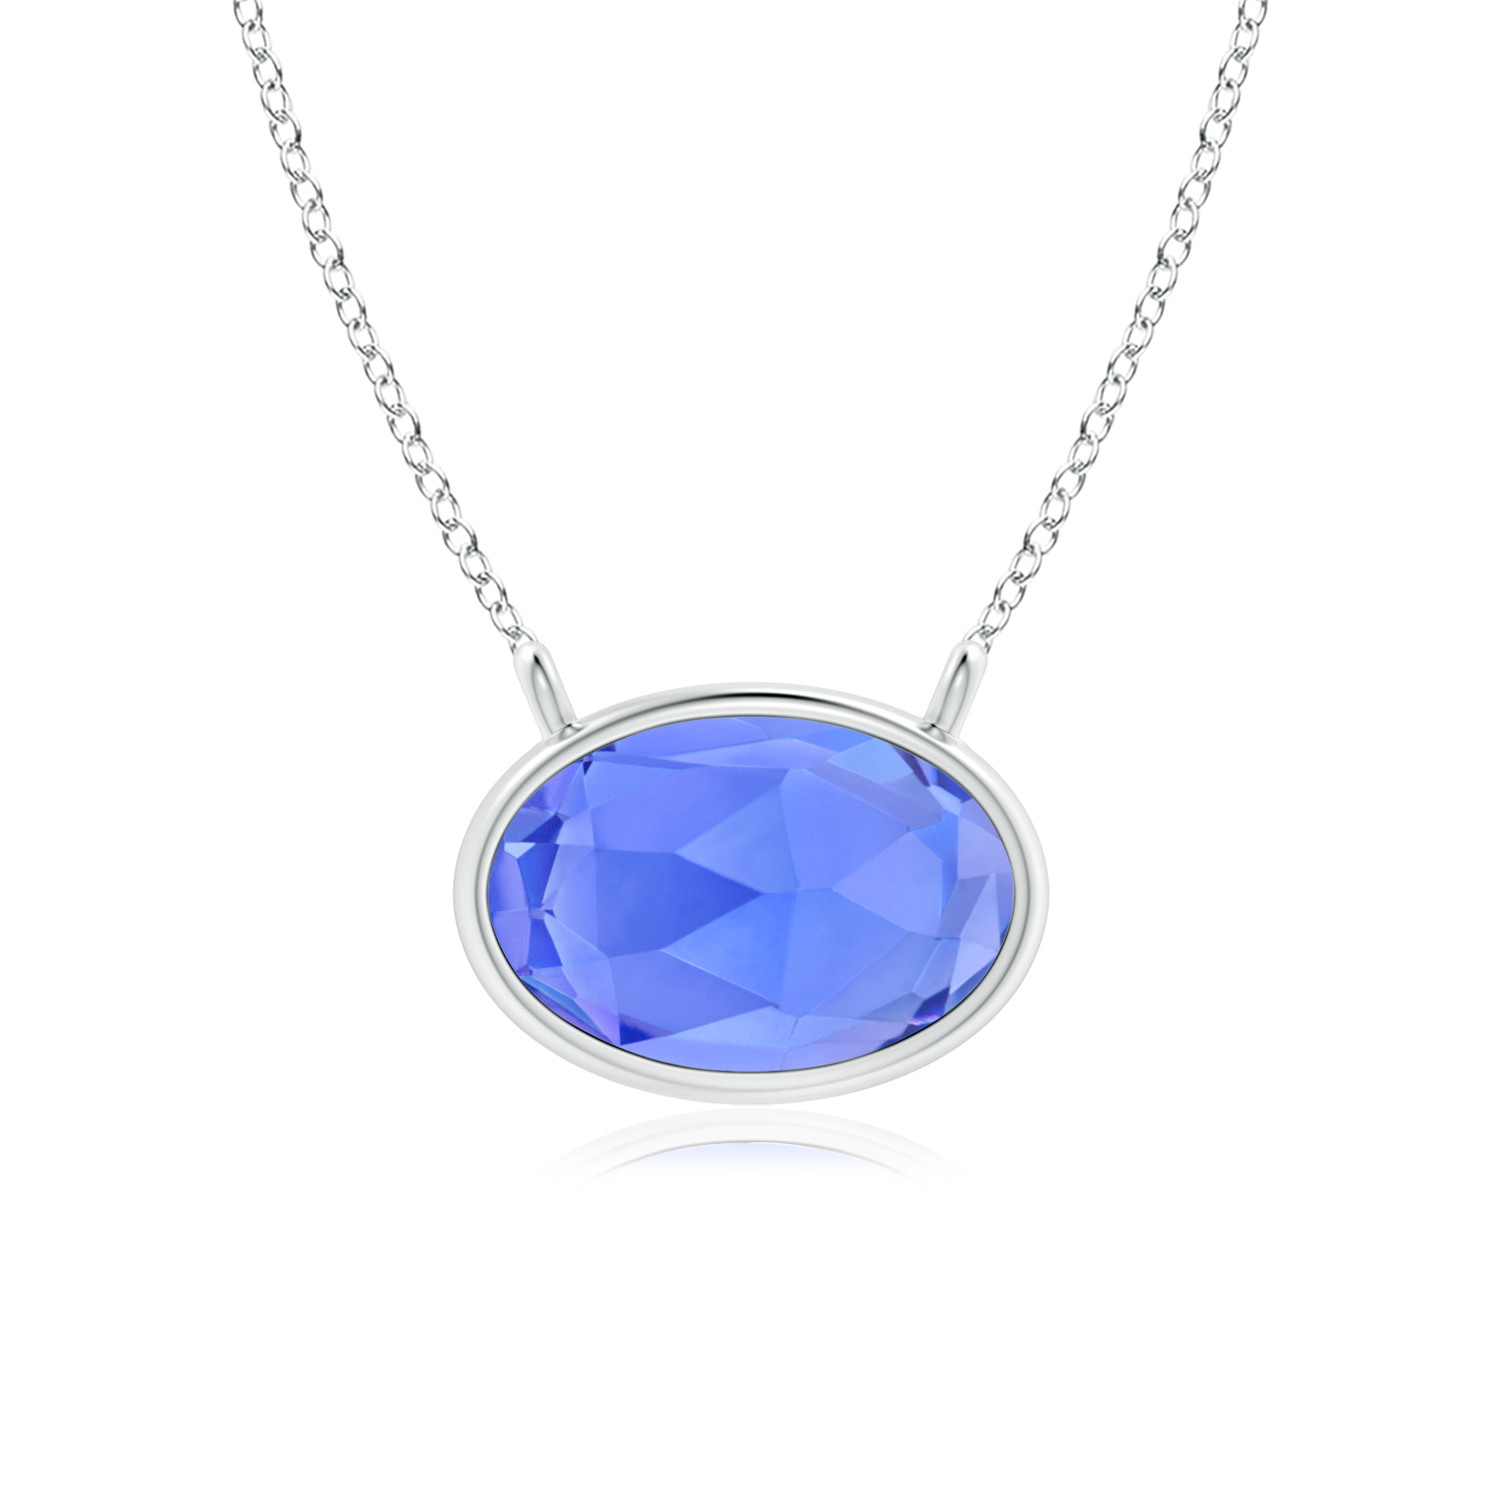 East West Tanzanite Solitaire Necklace - Angara.com